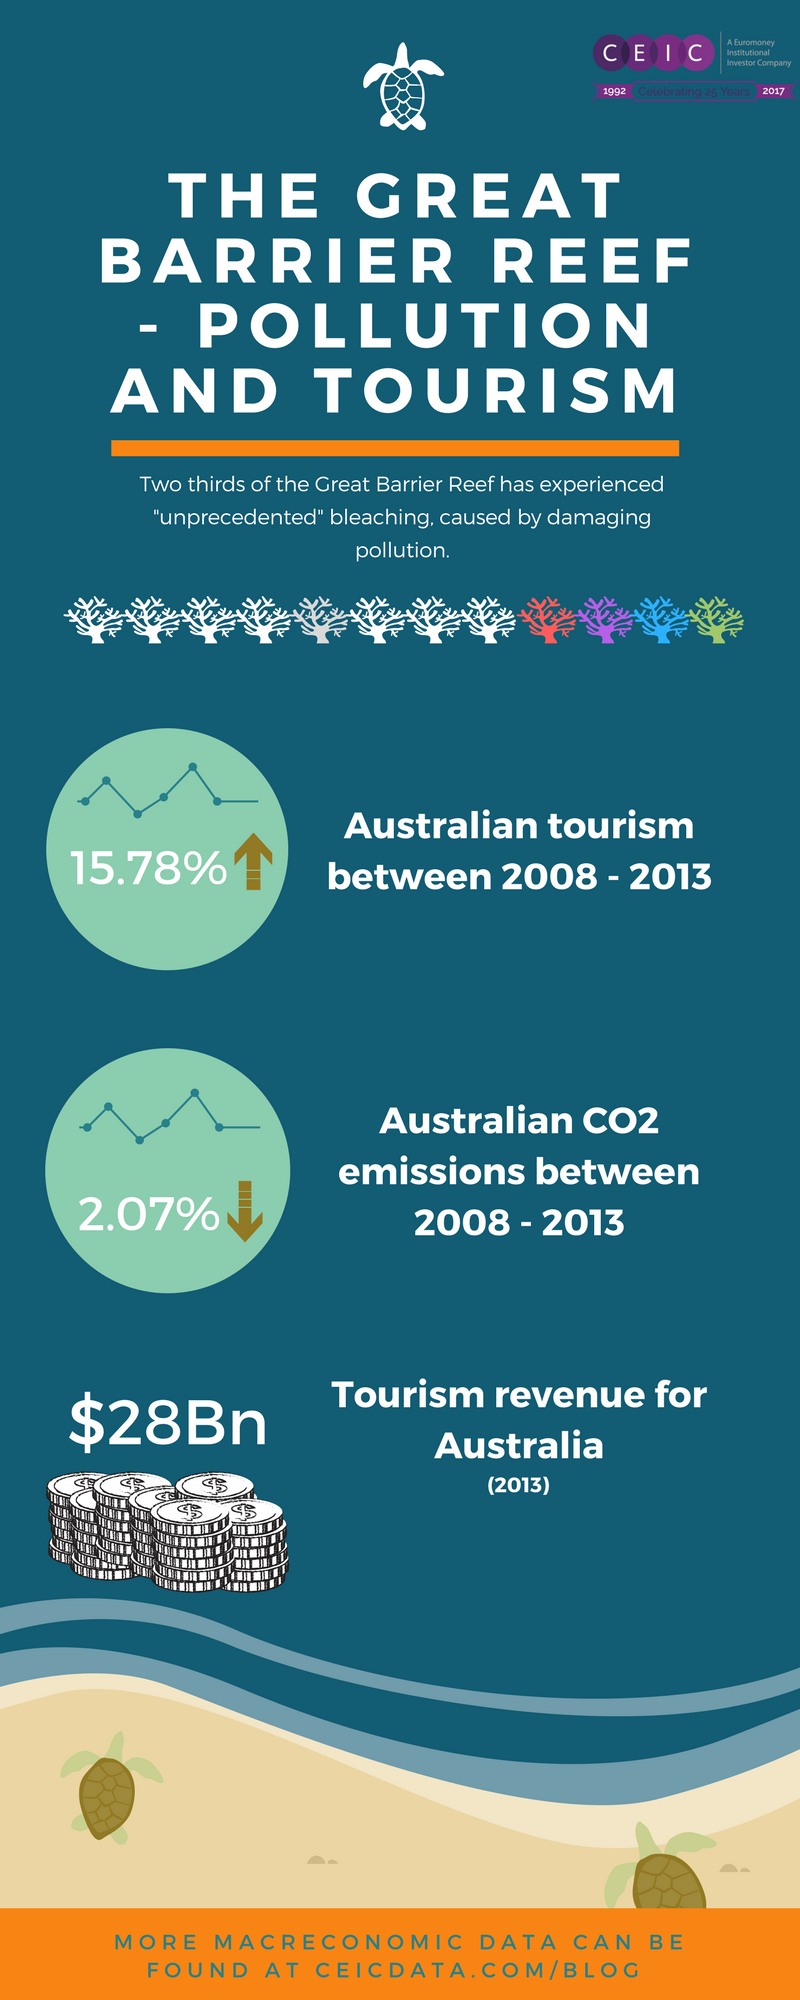 Australian tourism and pollution